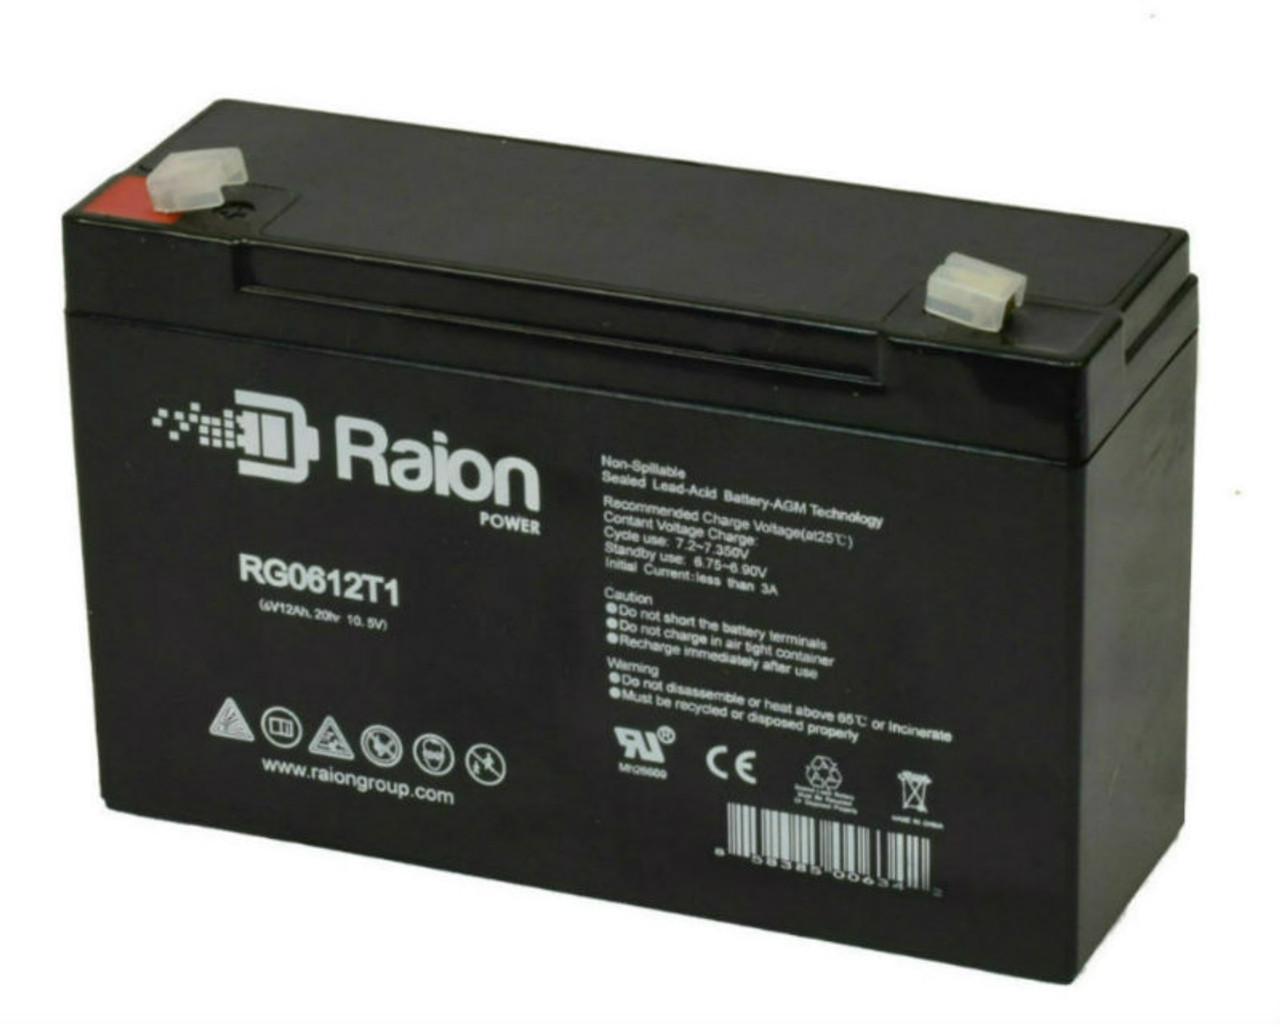 Raion Power RG06120T1 Replacement Battery Pack for Chloride 11A74 emergency light